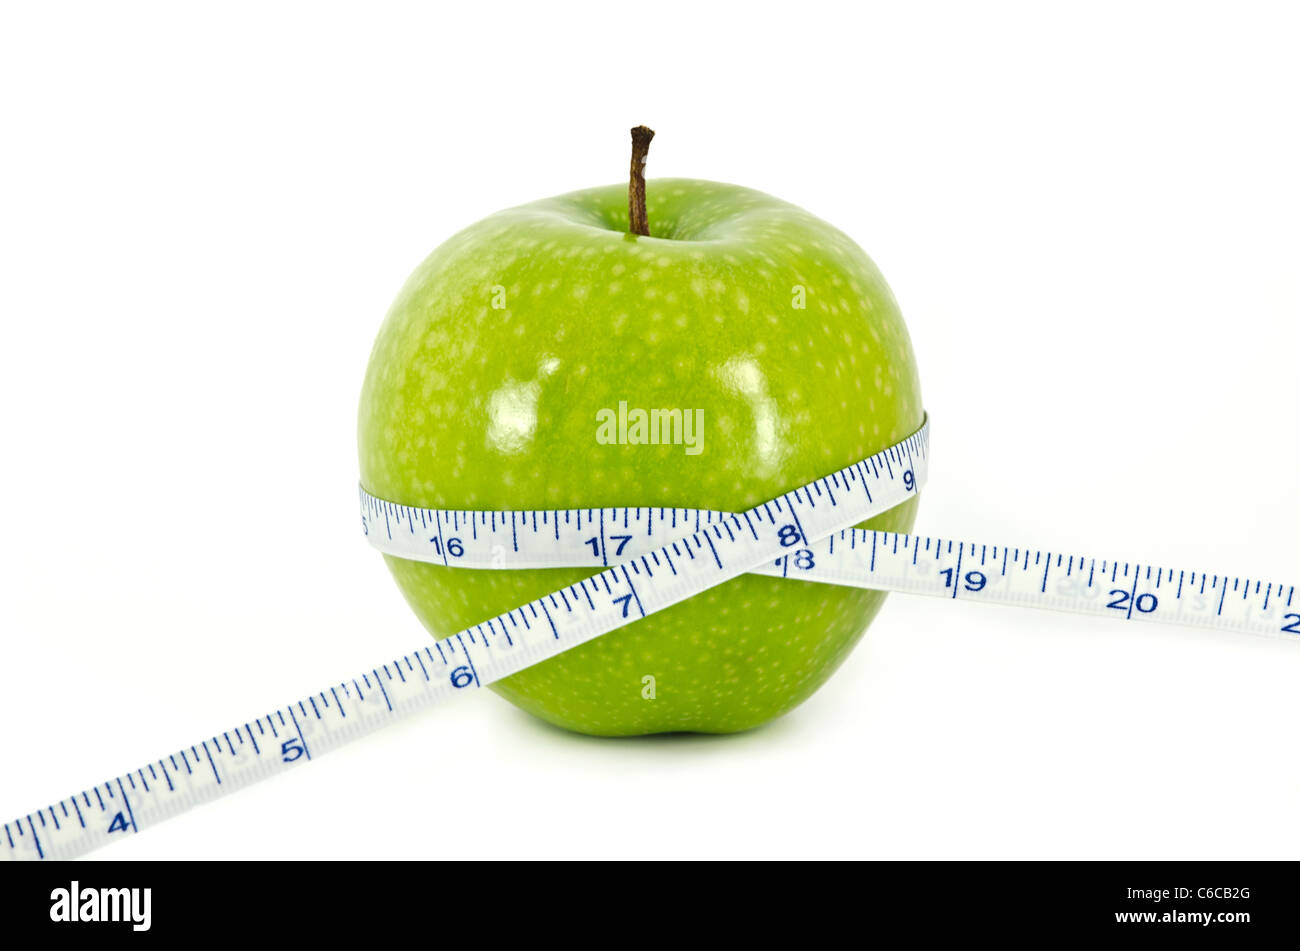 Apple and Measurement Tape Diet Concept - Stock Image